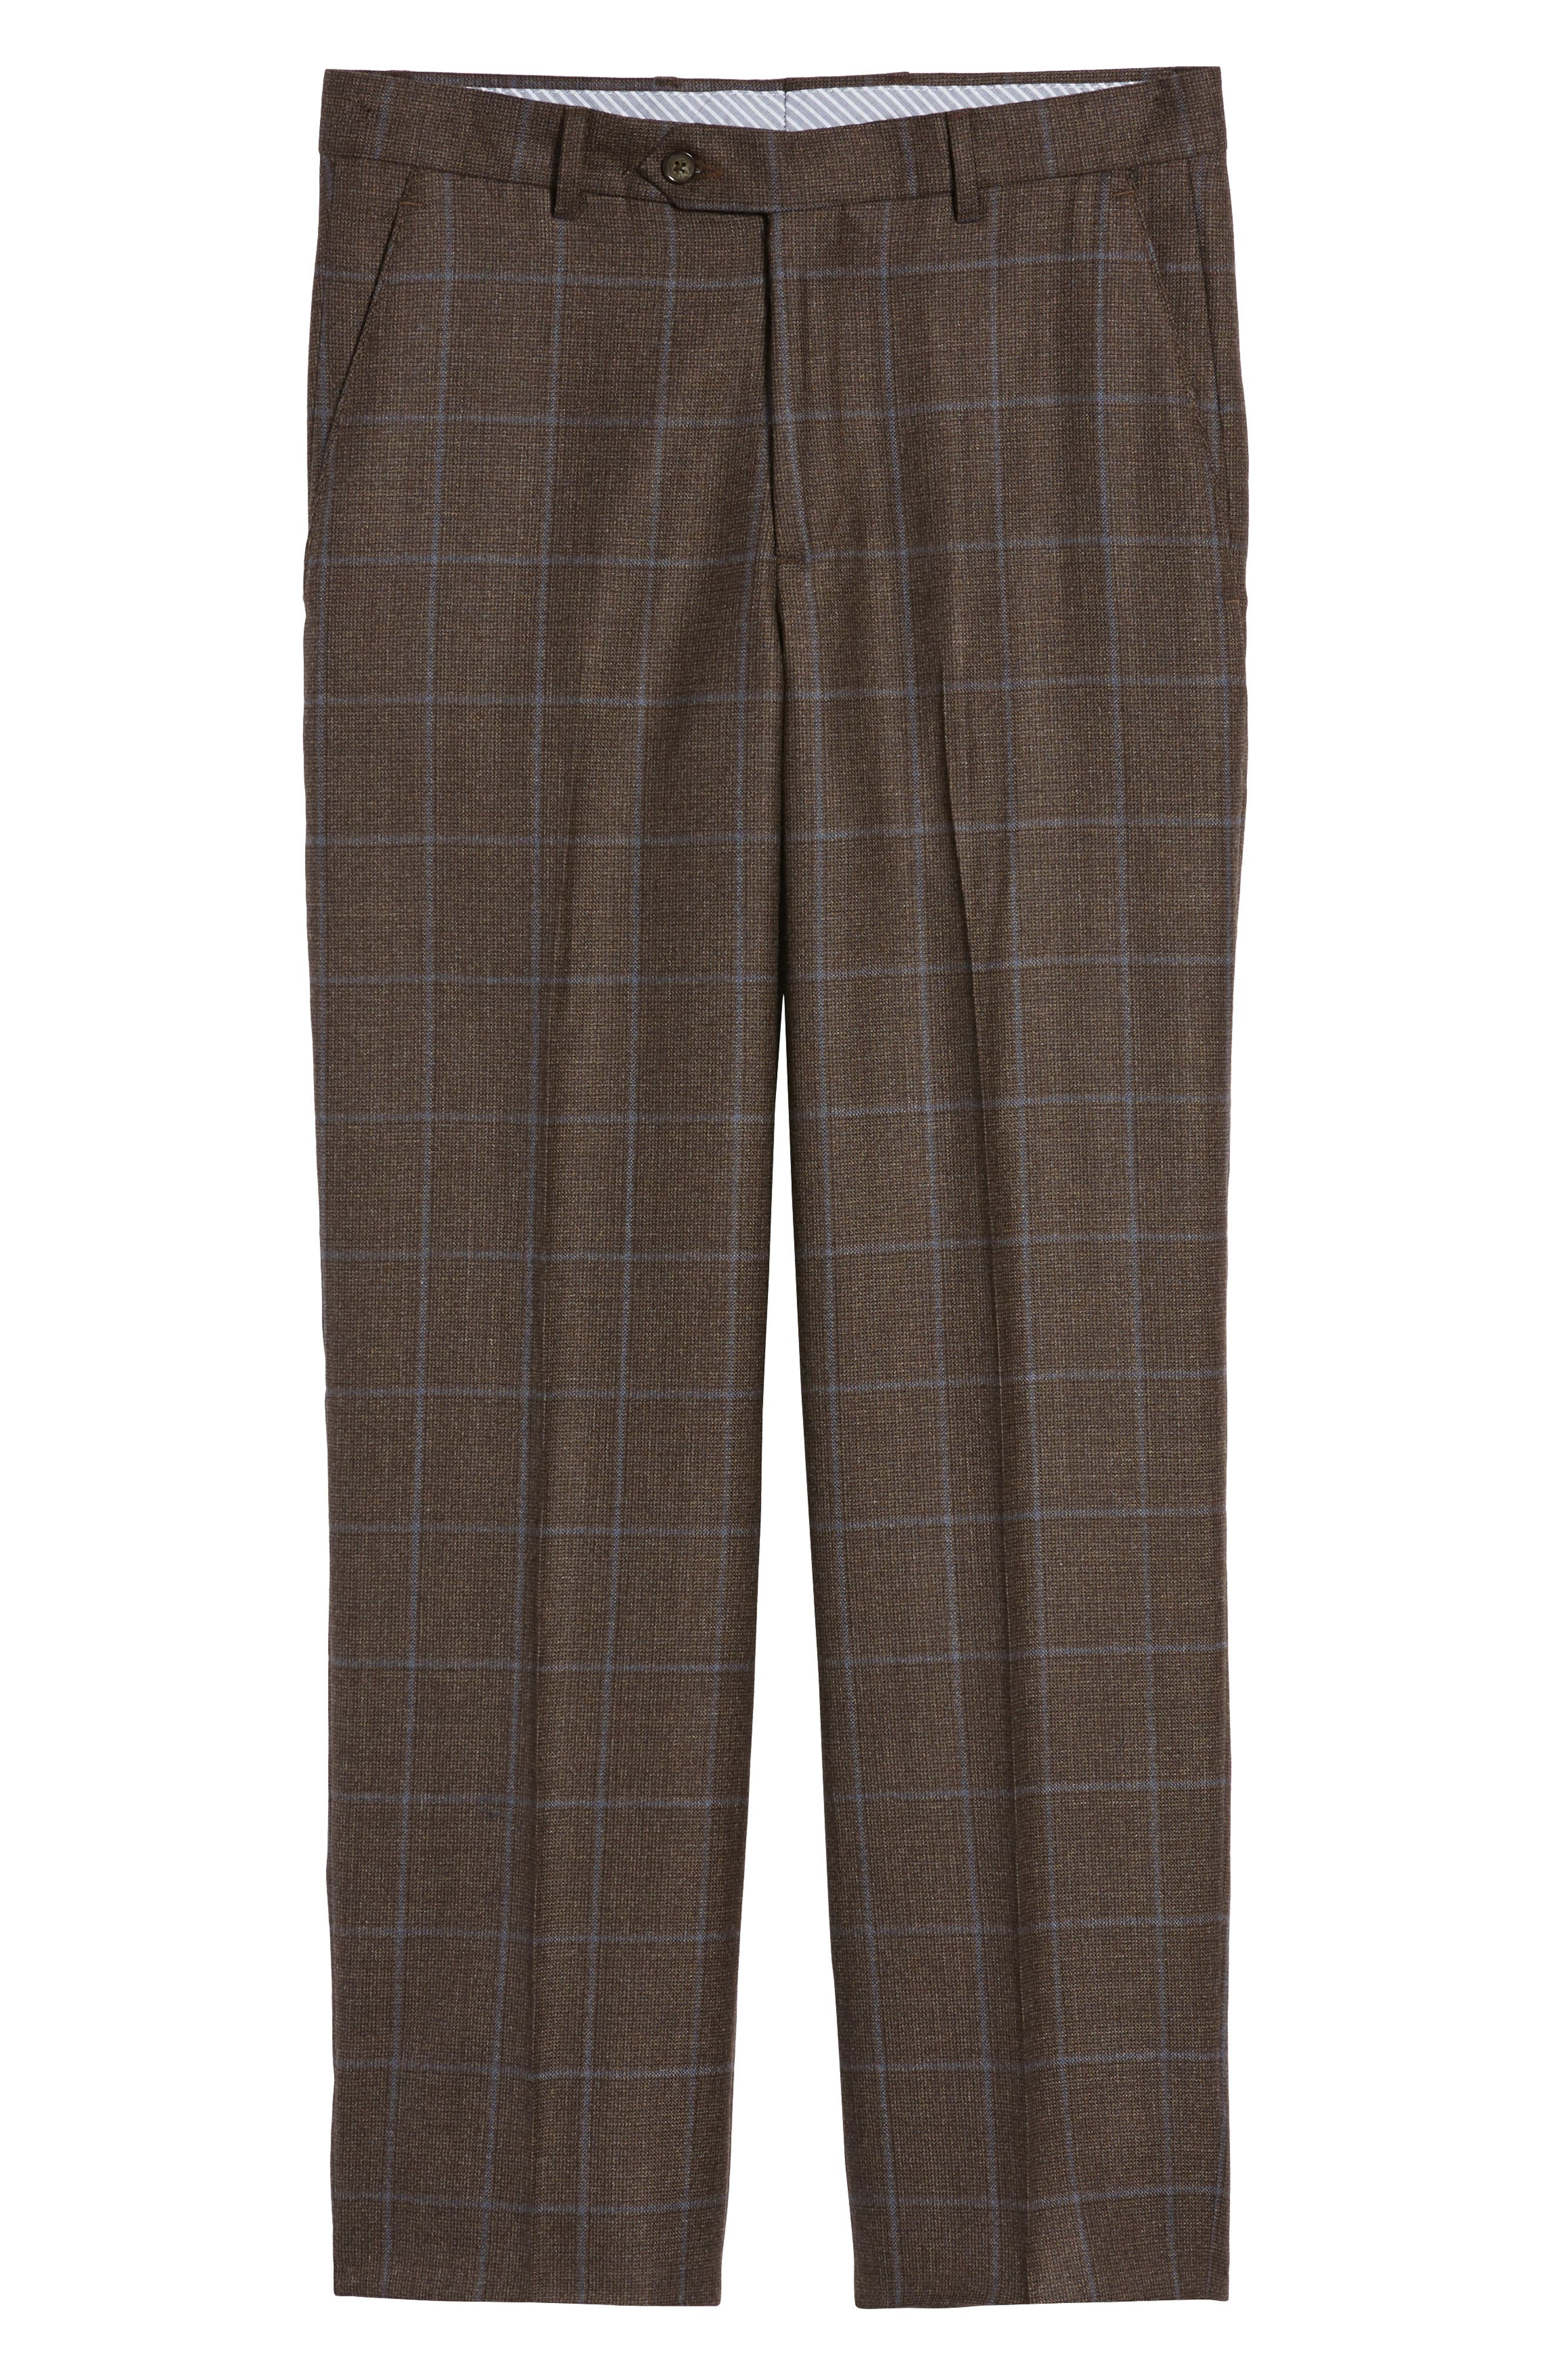 Flat Front Windowpane Wool Trousers,                             Alternate thumbnail 6, color,                             200